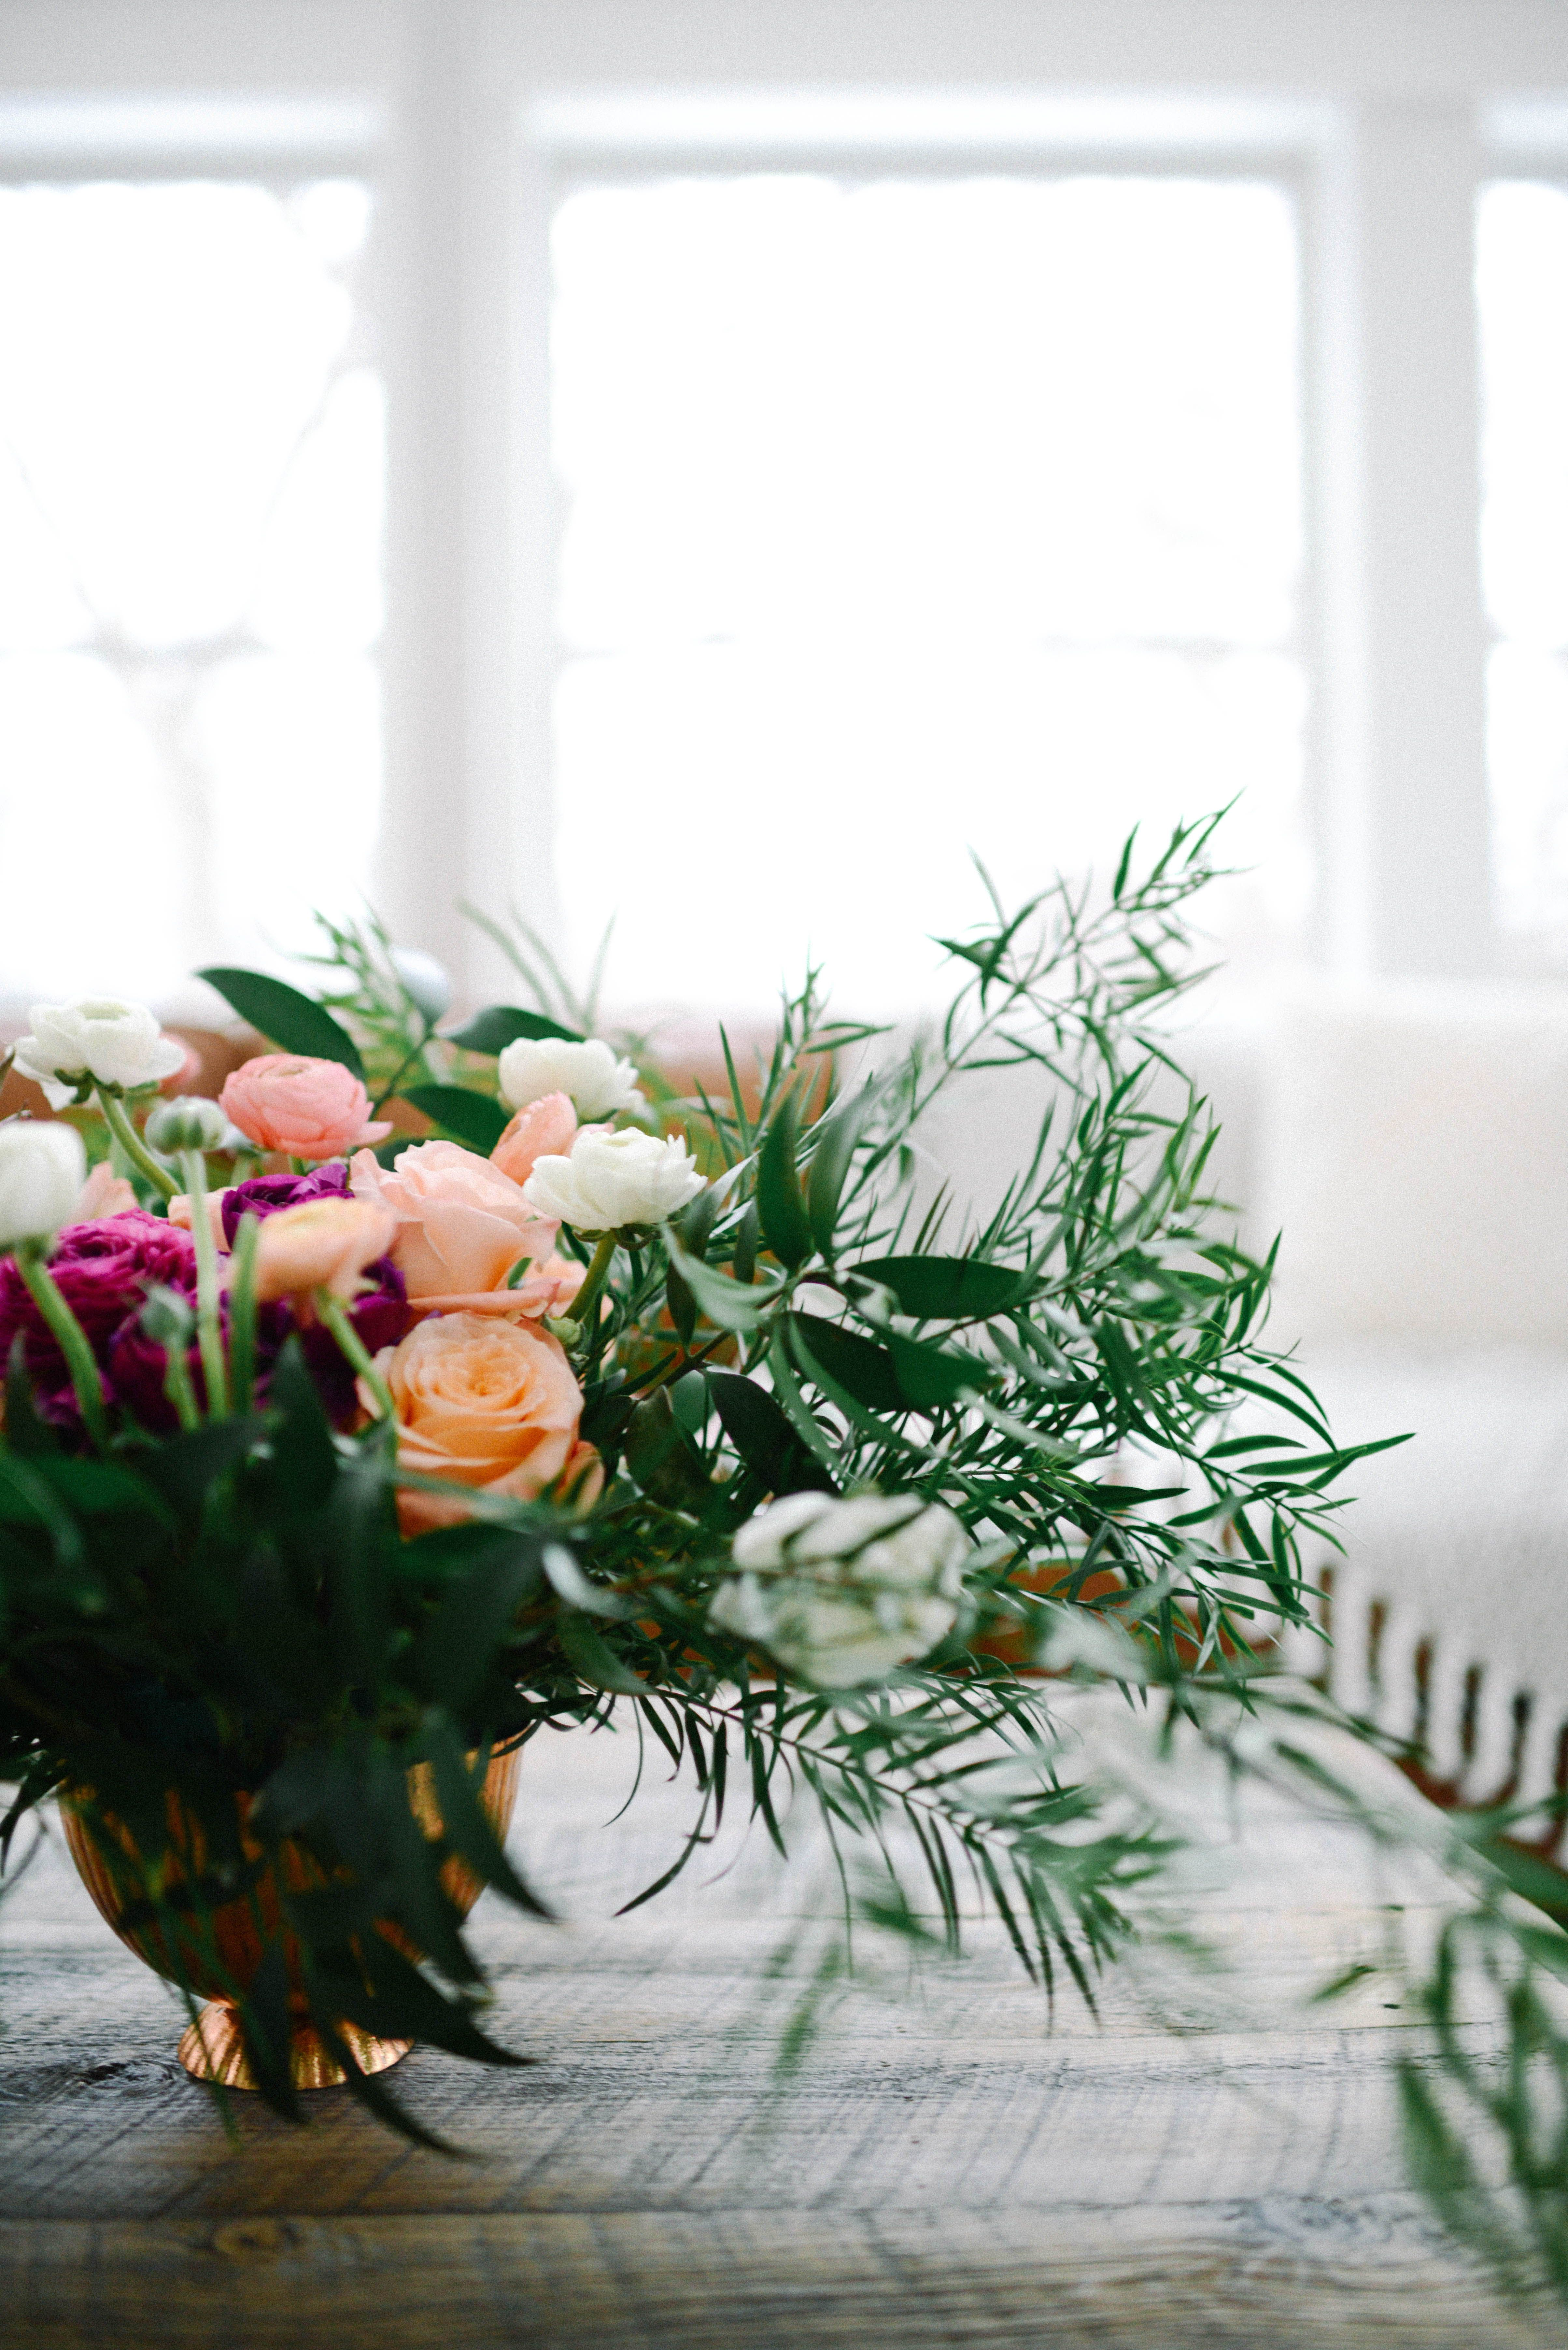 Whimsical floral design for home styling. #interiorstyling ...